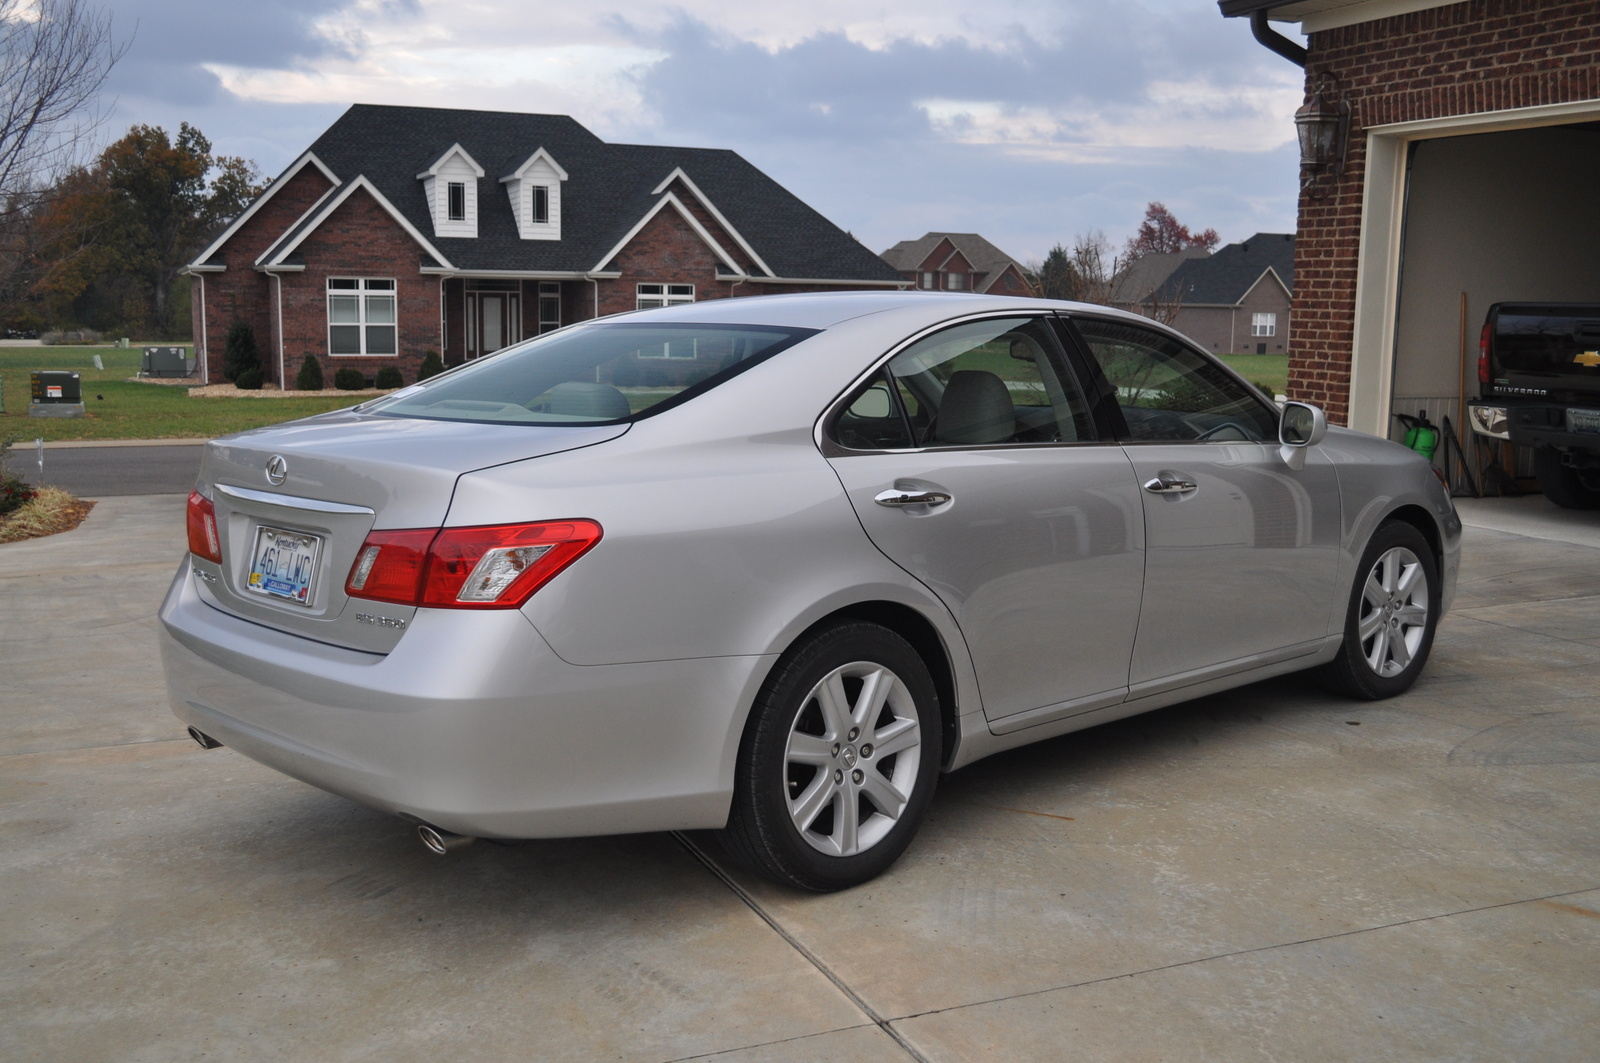 lexus es 350 2008 technical specifications interior and exterior photo. Black Bedroom Furniture Sets. Home Design Ideas